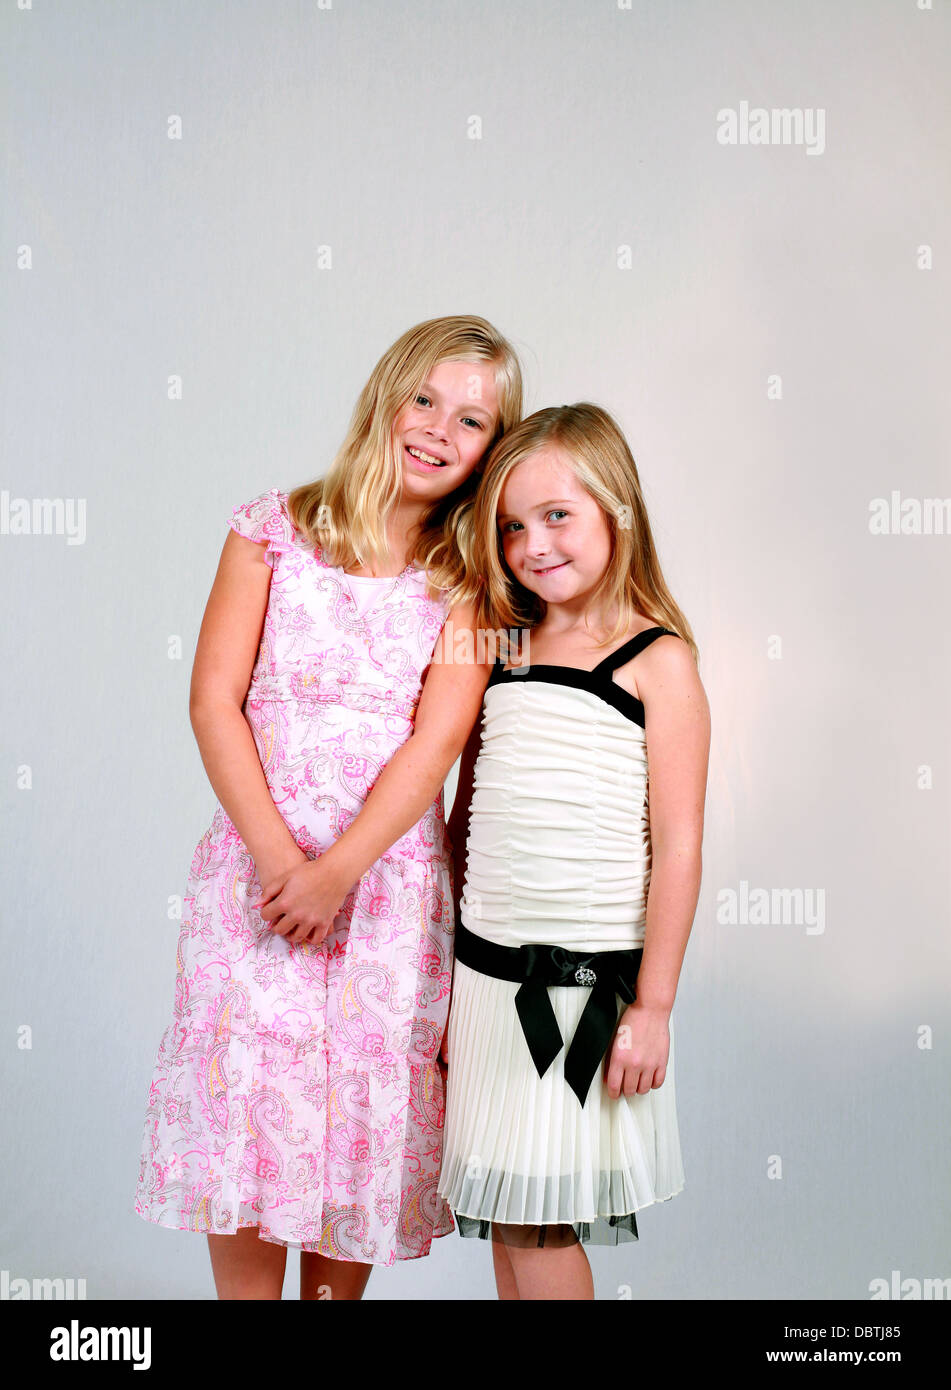 Two Pretty Blonde Preteen Girls In Dresses Smiling Stock